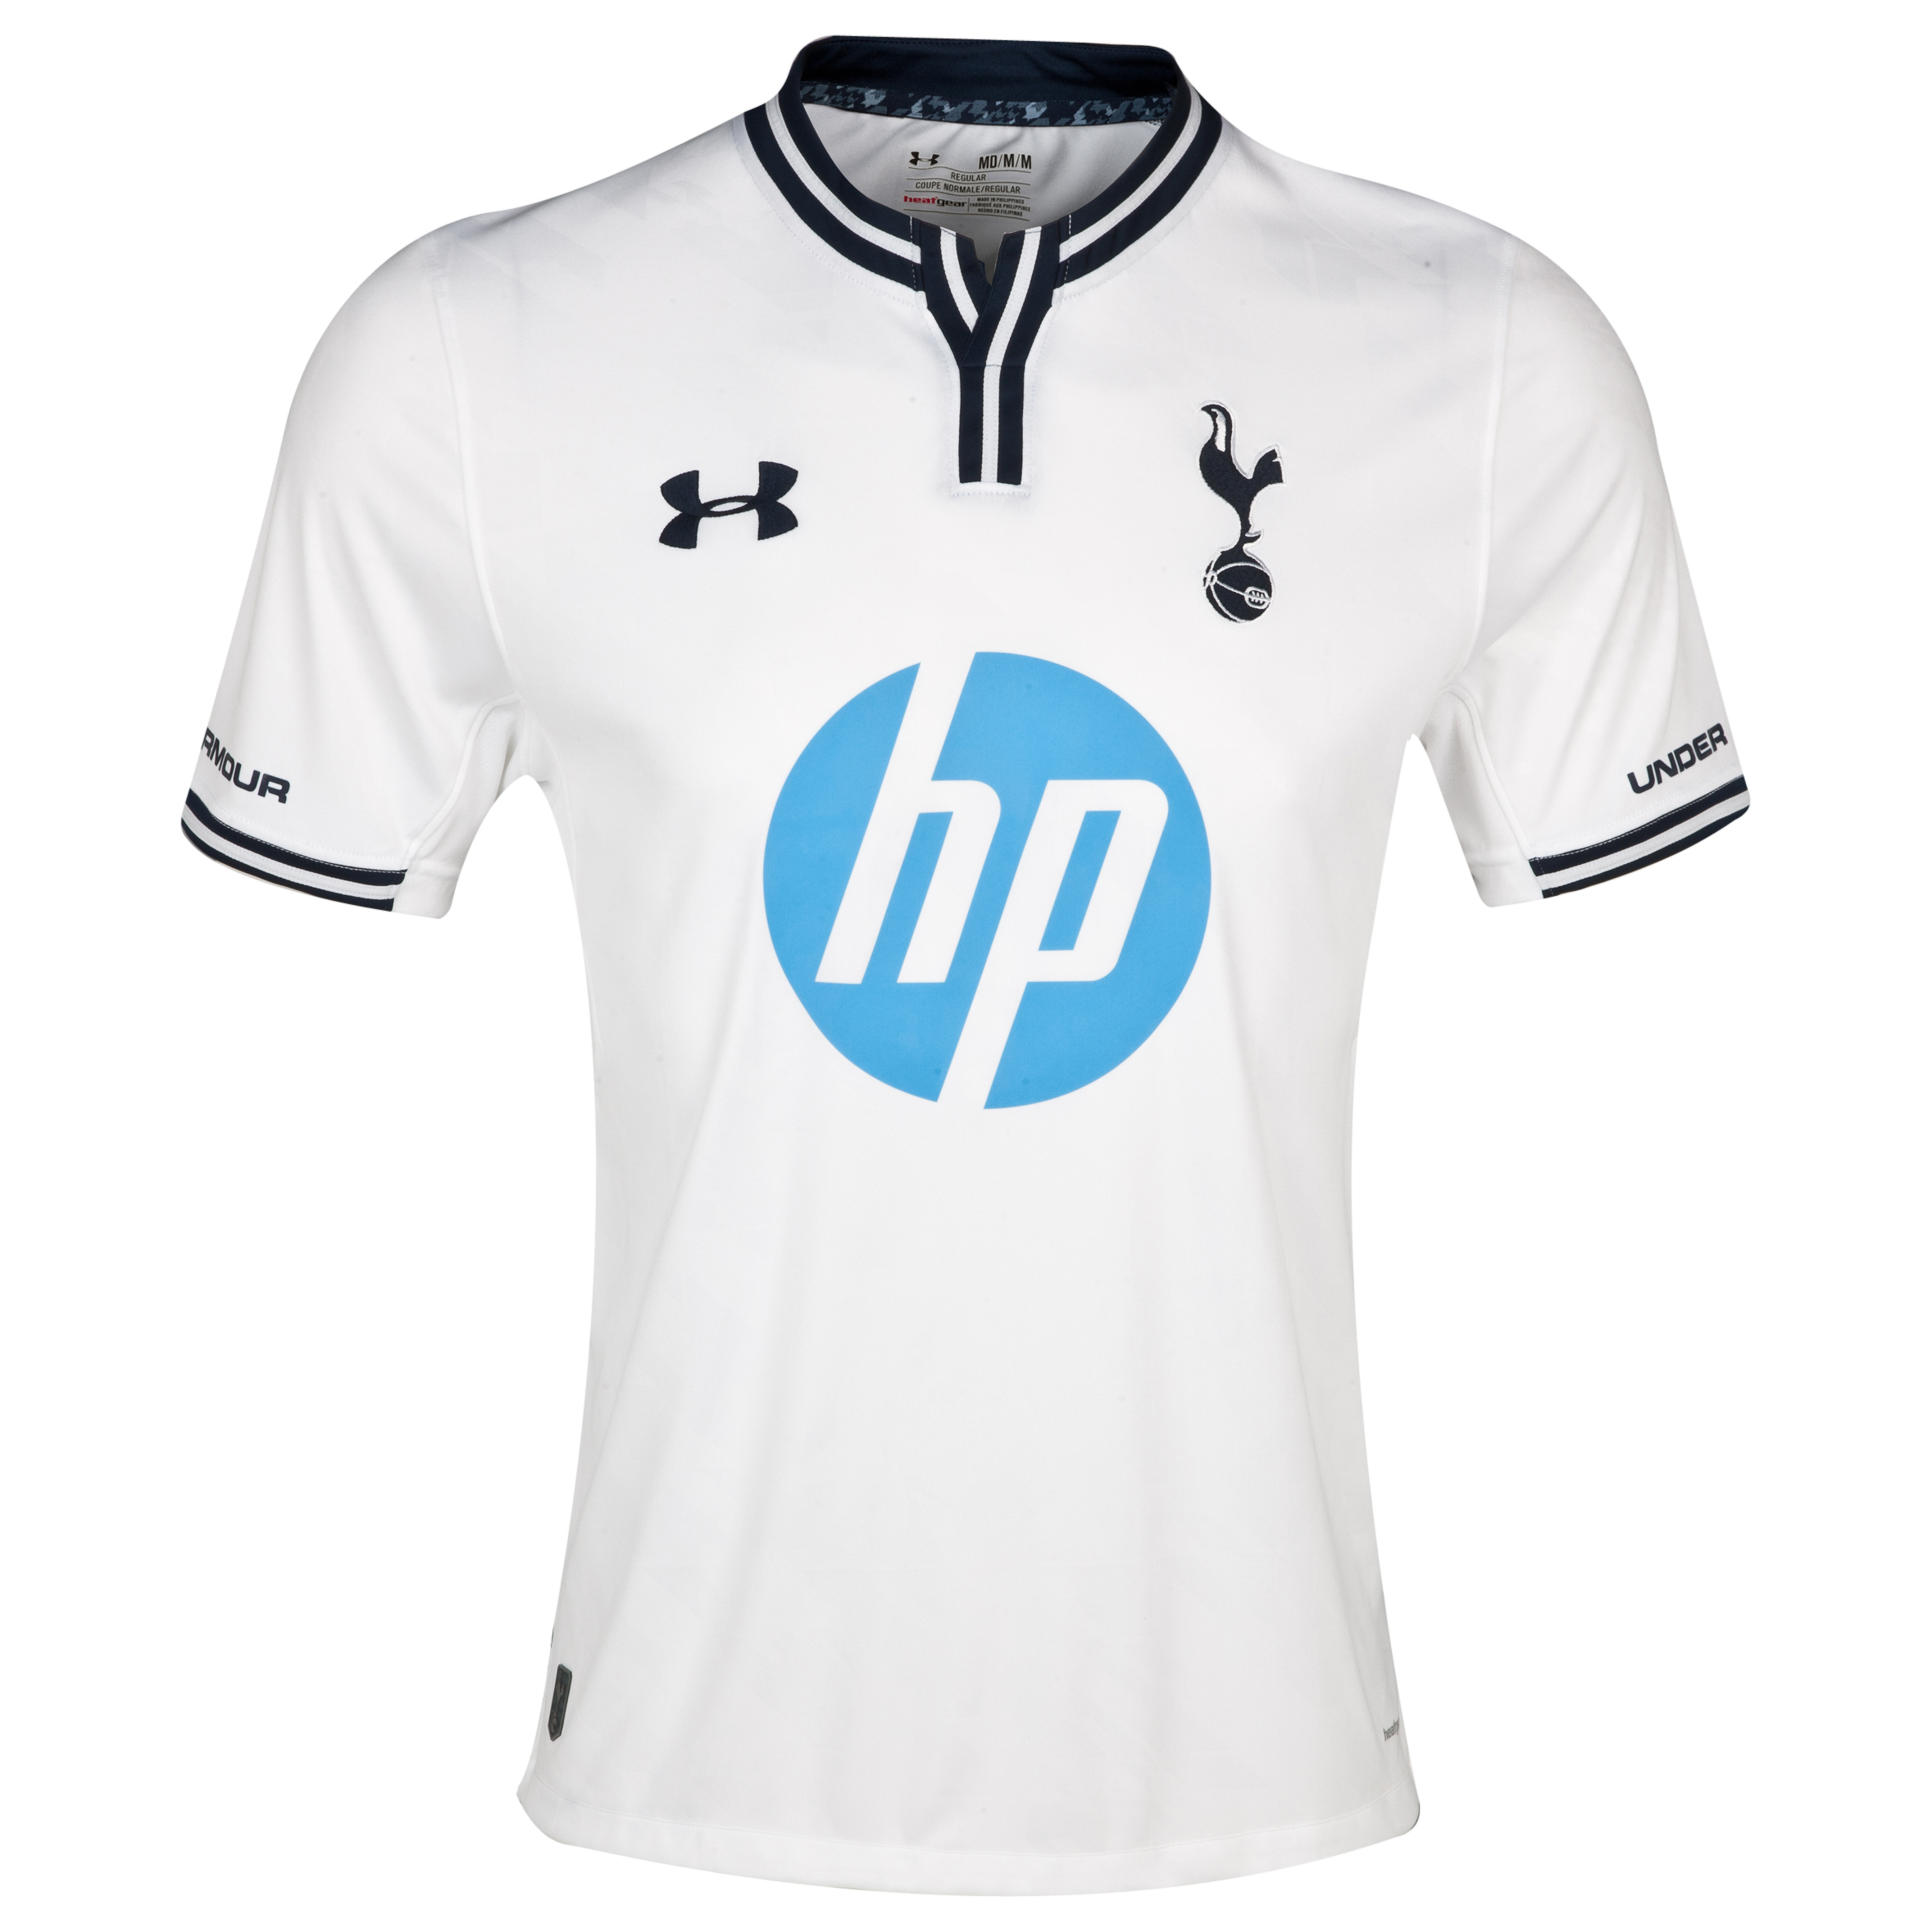 Buy Tottenham Hotspur Home Kit 2013/14 Kids